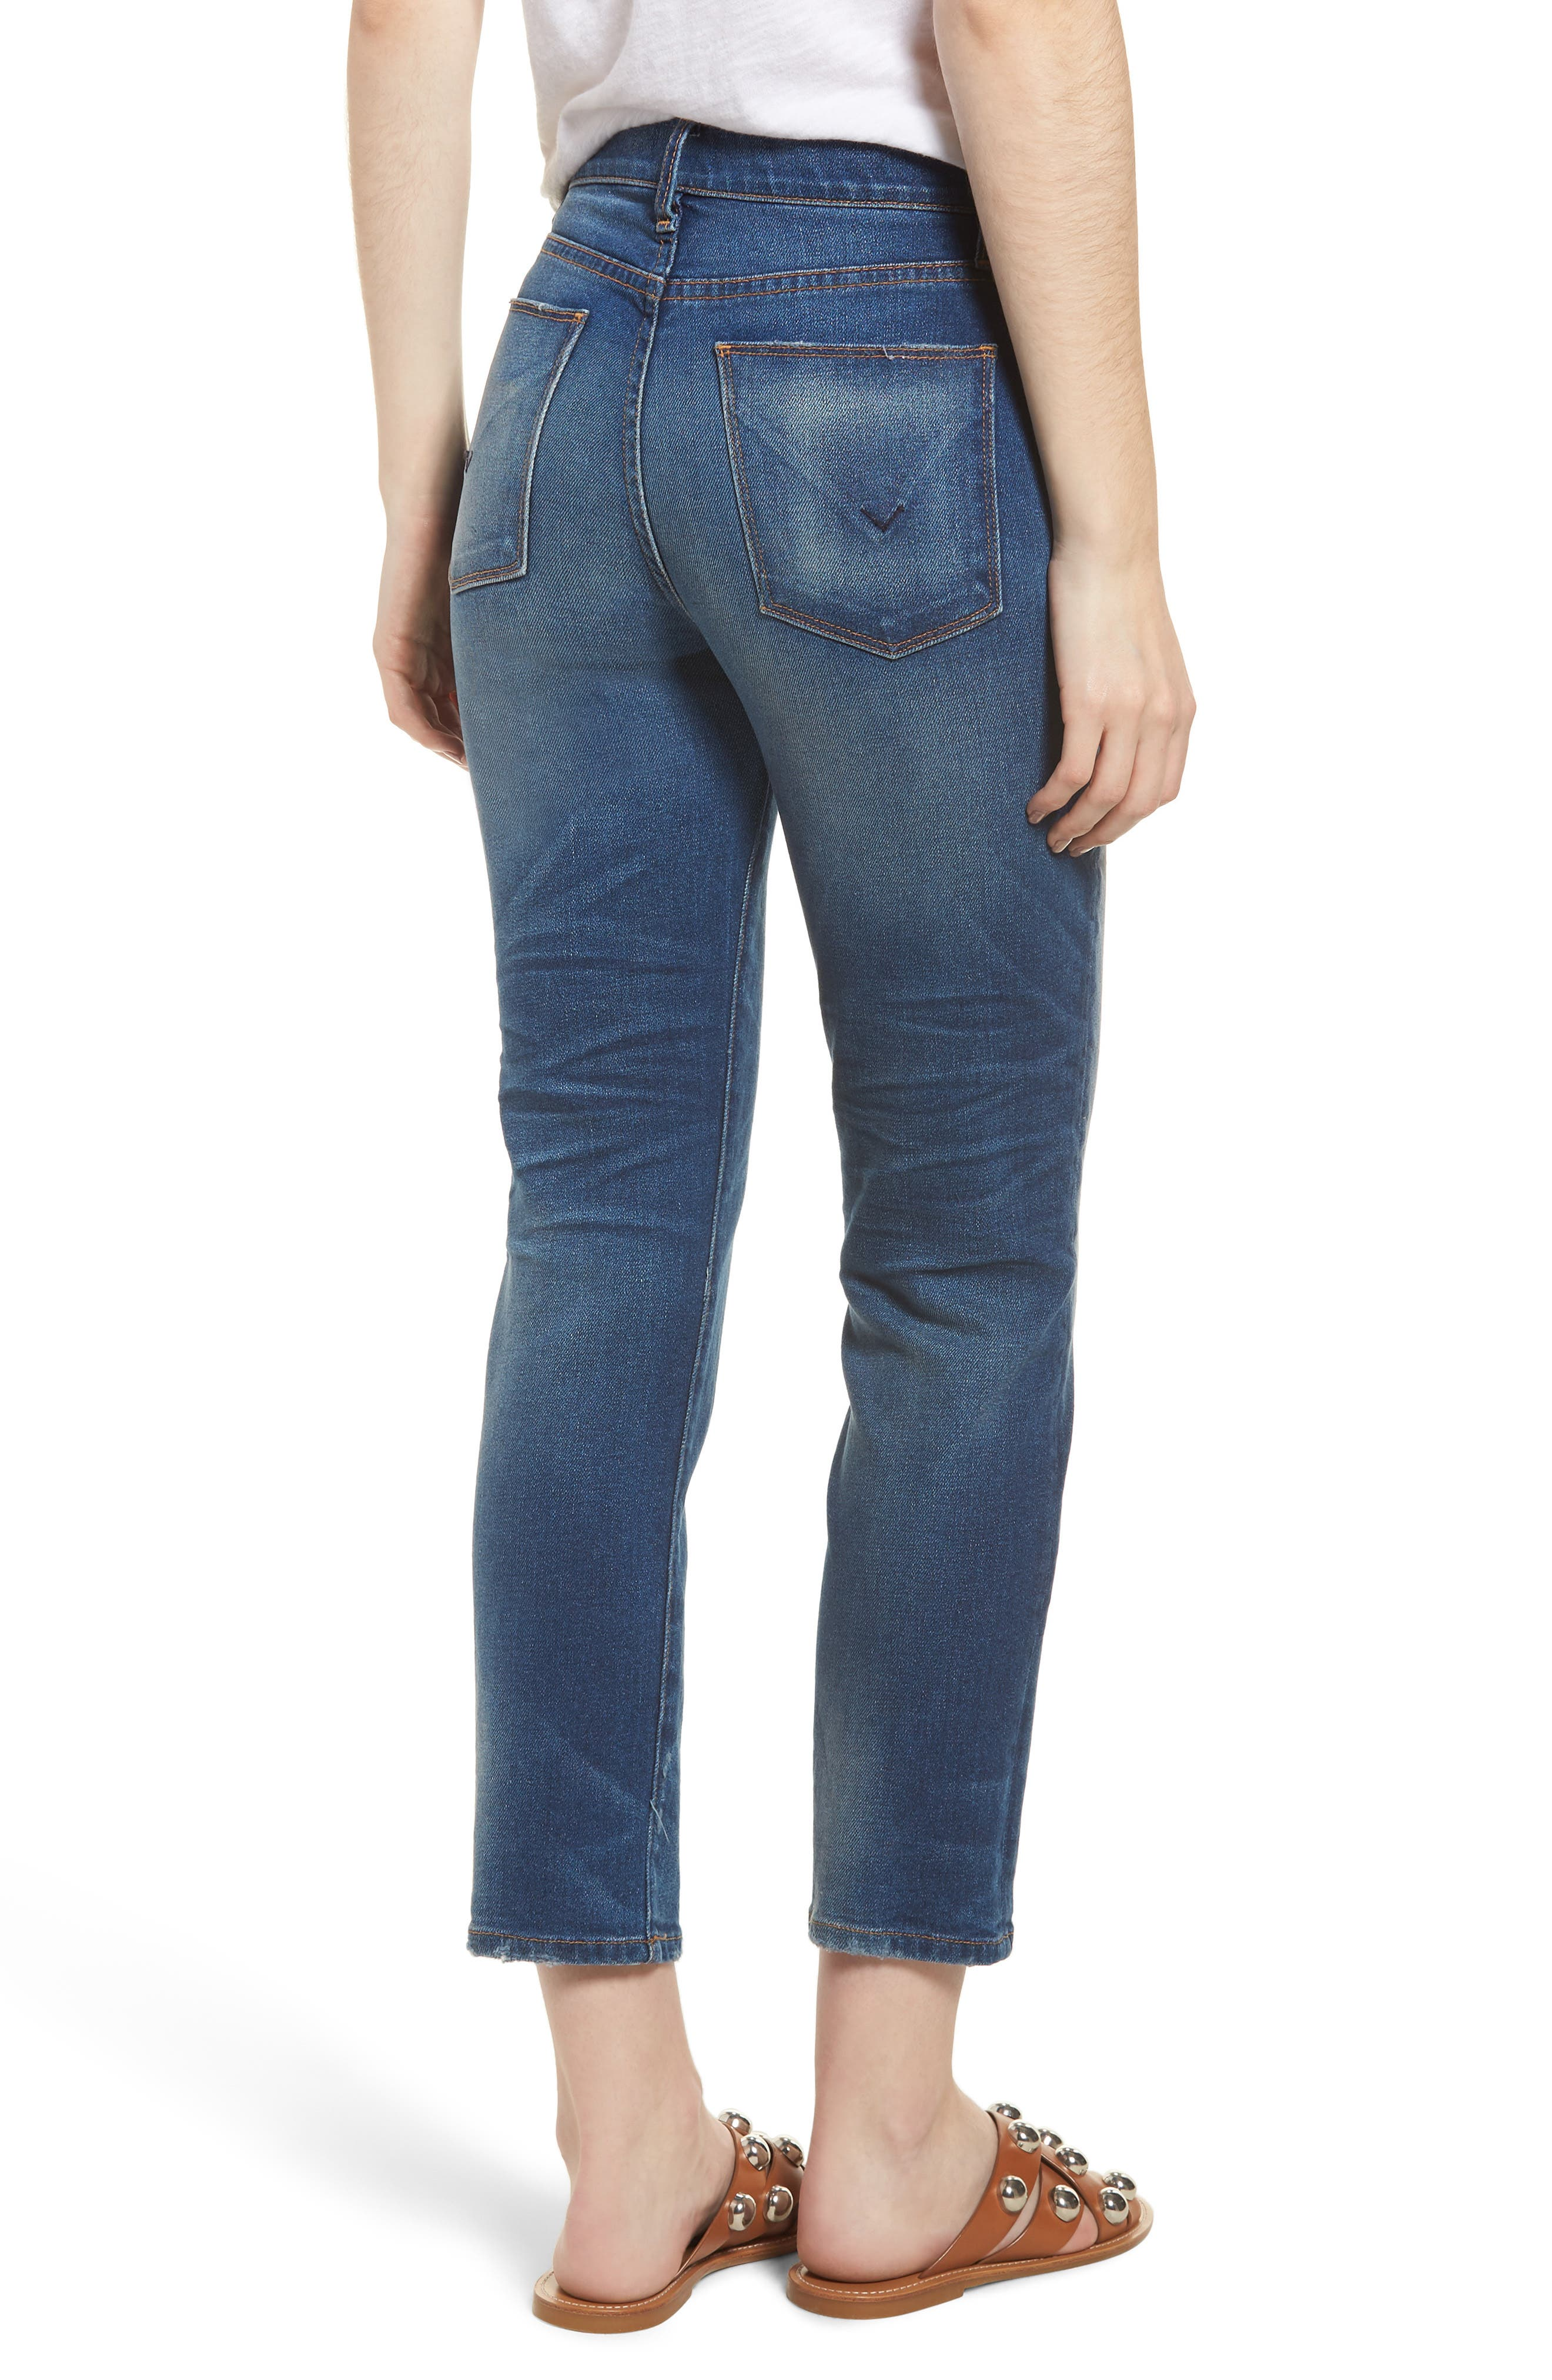 Zoeey High Waist Crop Straight Leg Jeans,                             Alternate thumbnail 2, color,                             Undenied